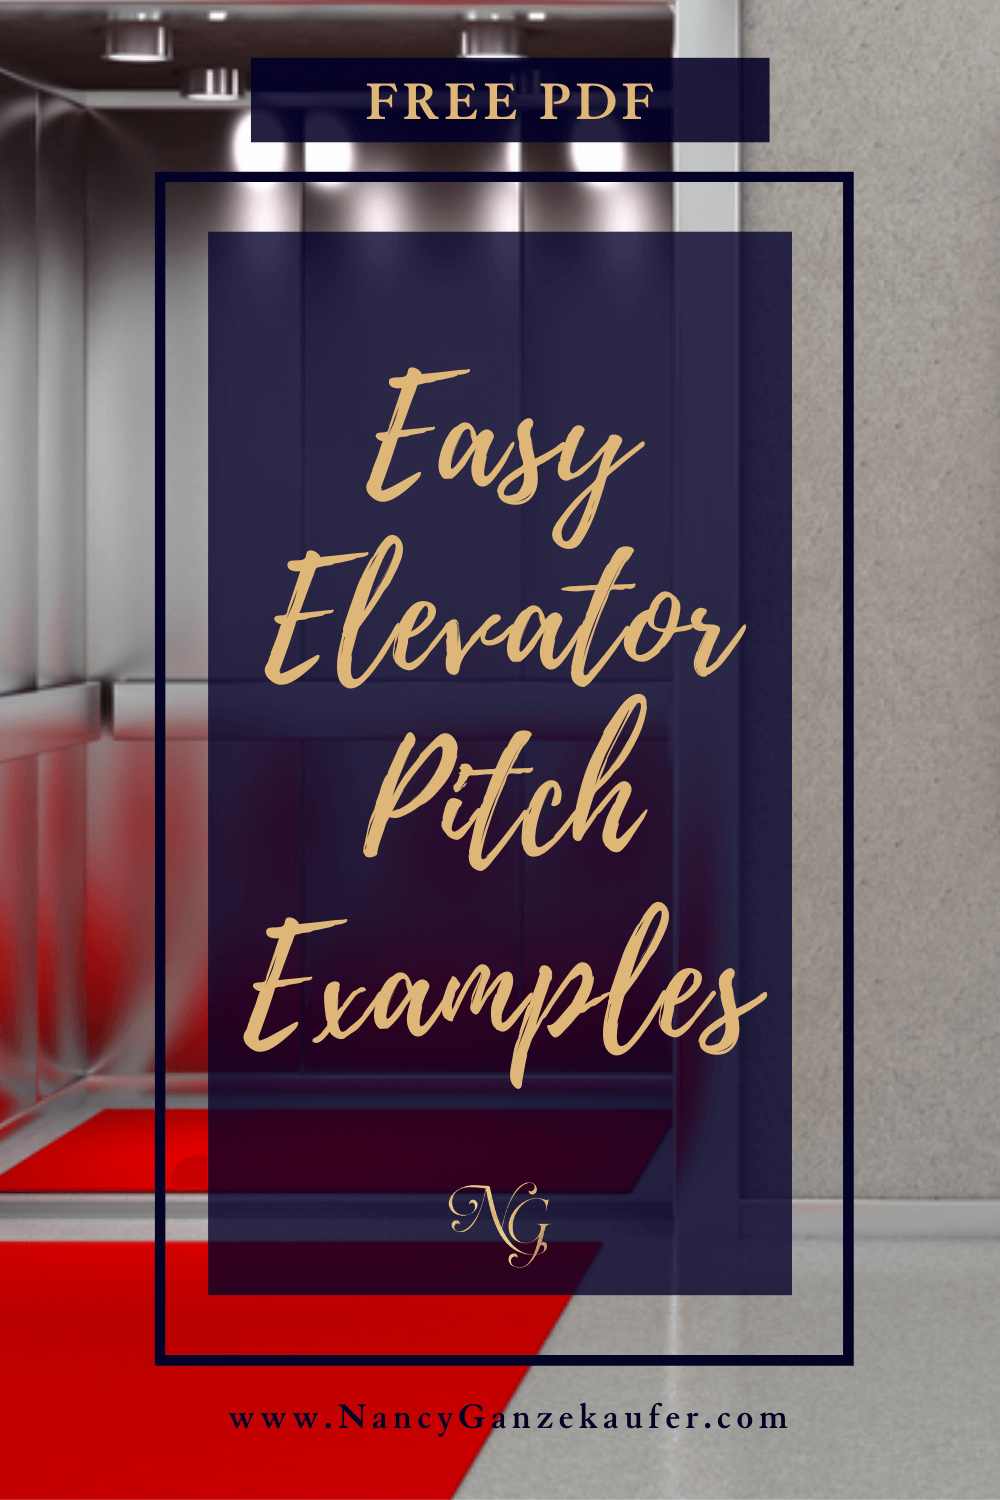 Easy elevator pitch examples to describe what you do.